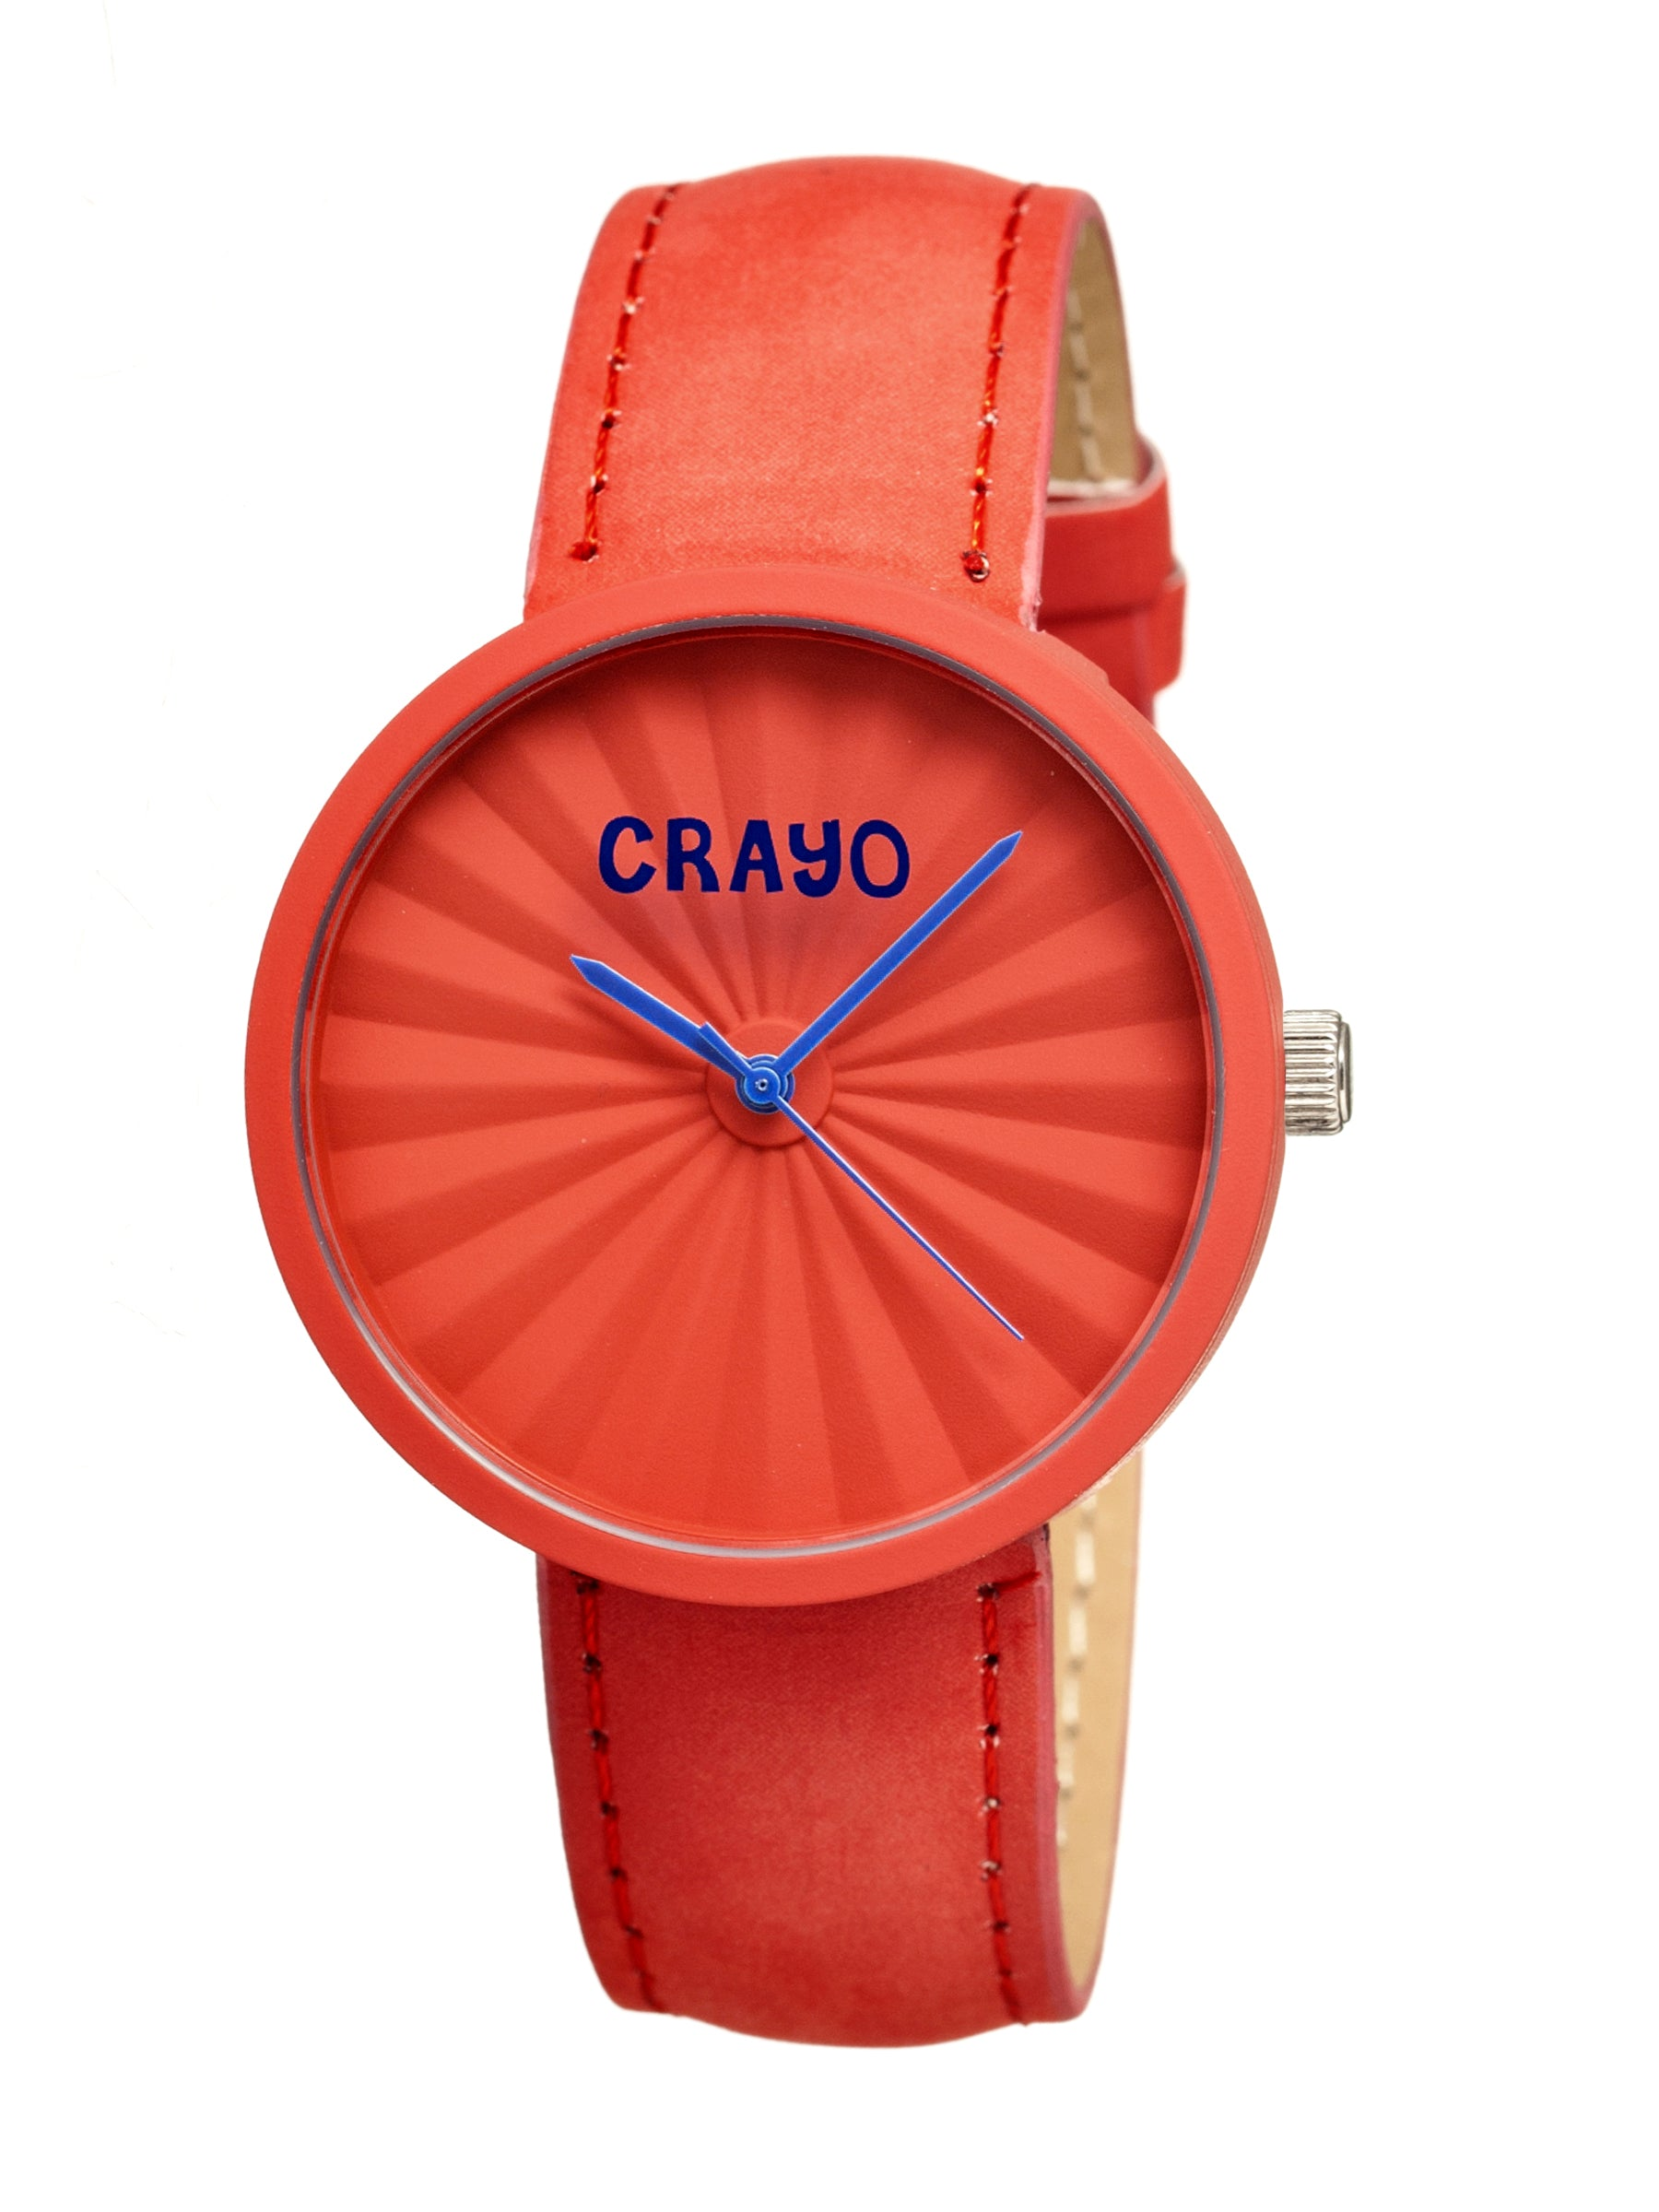 Crayo Pleats Leather-Band Unisex Watch - Red - CRACR1505